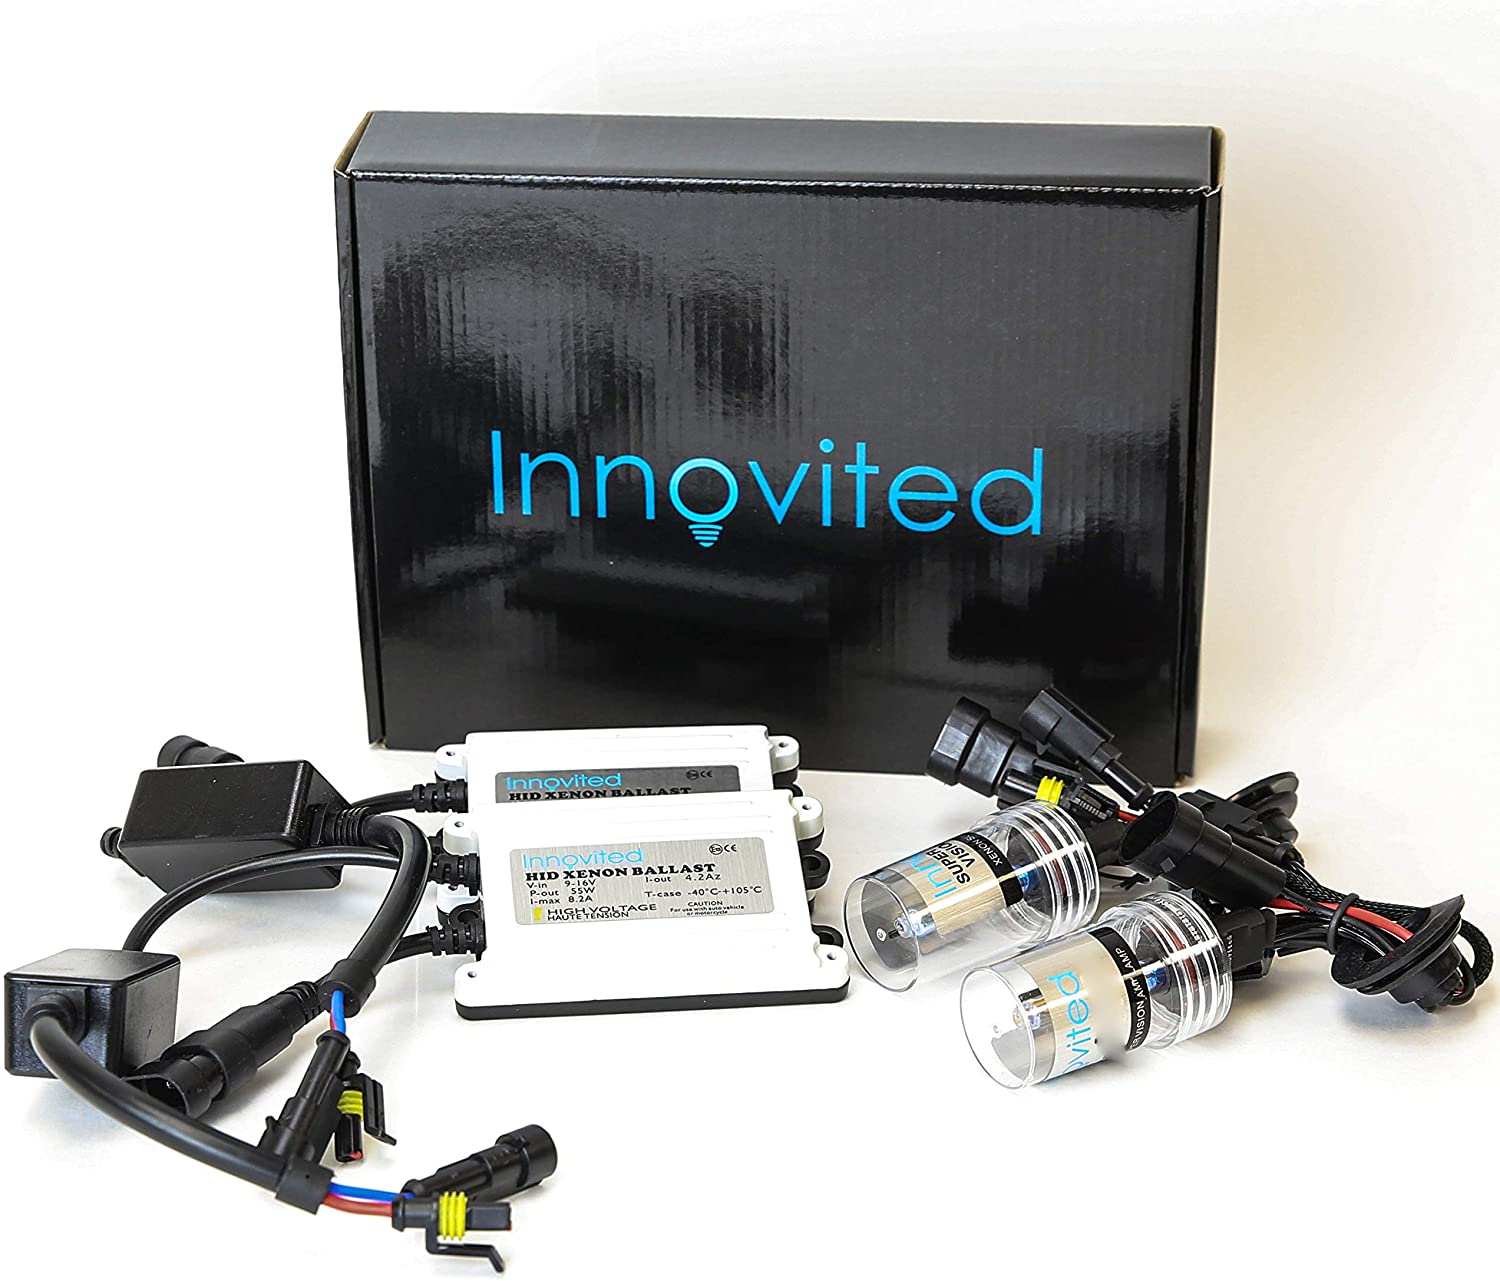 Innovited 55W AC HID bundle